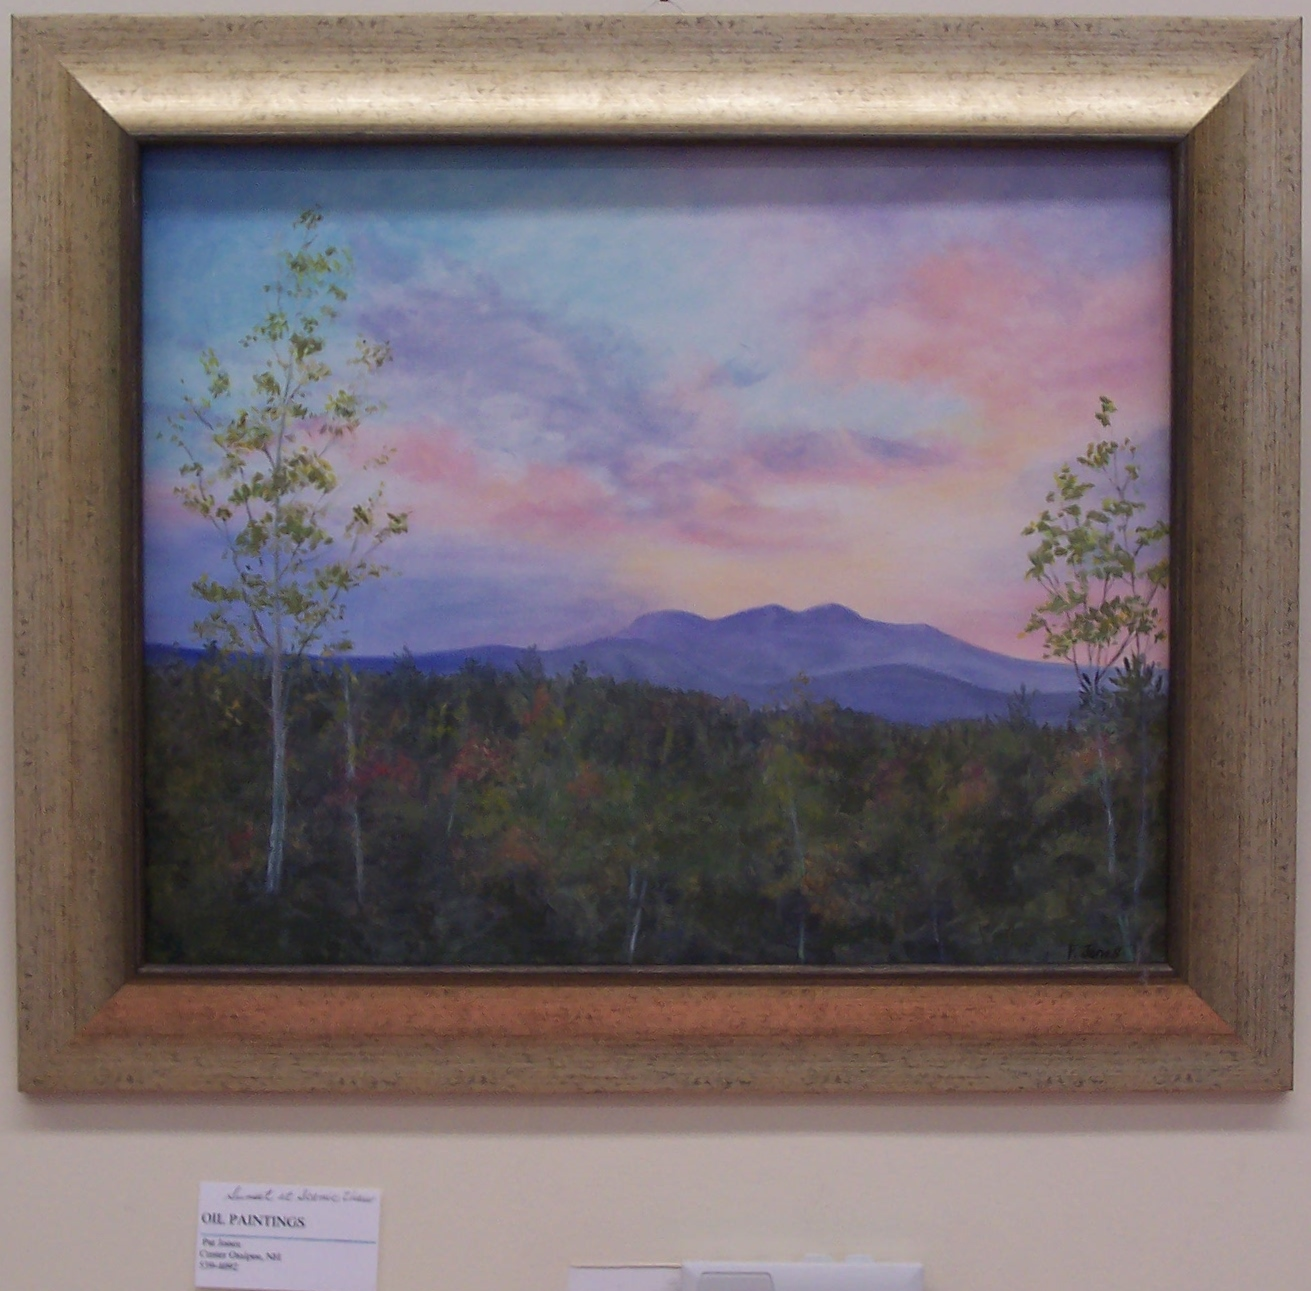 Oil Paintings By Pat Jones Will Be On Display At The Ossipee Public Library Through The Month Of